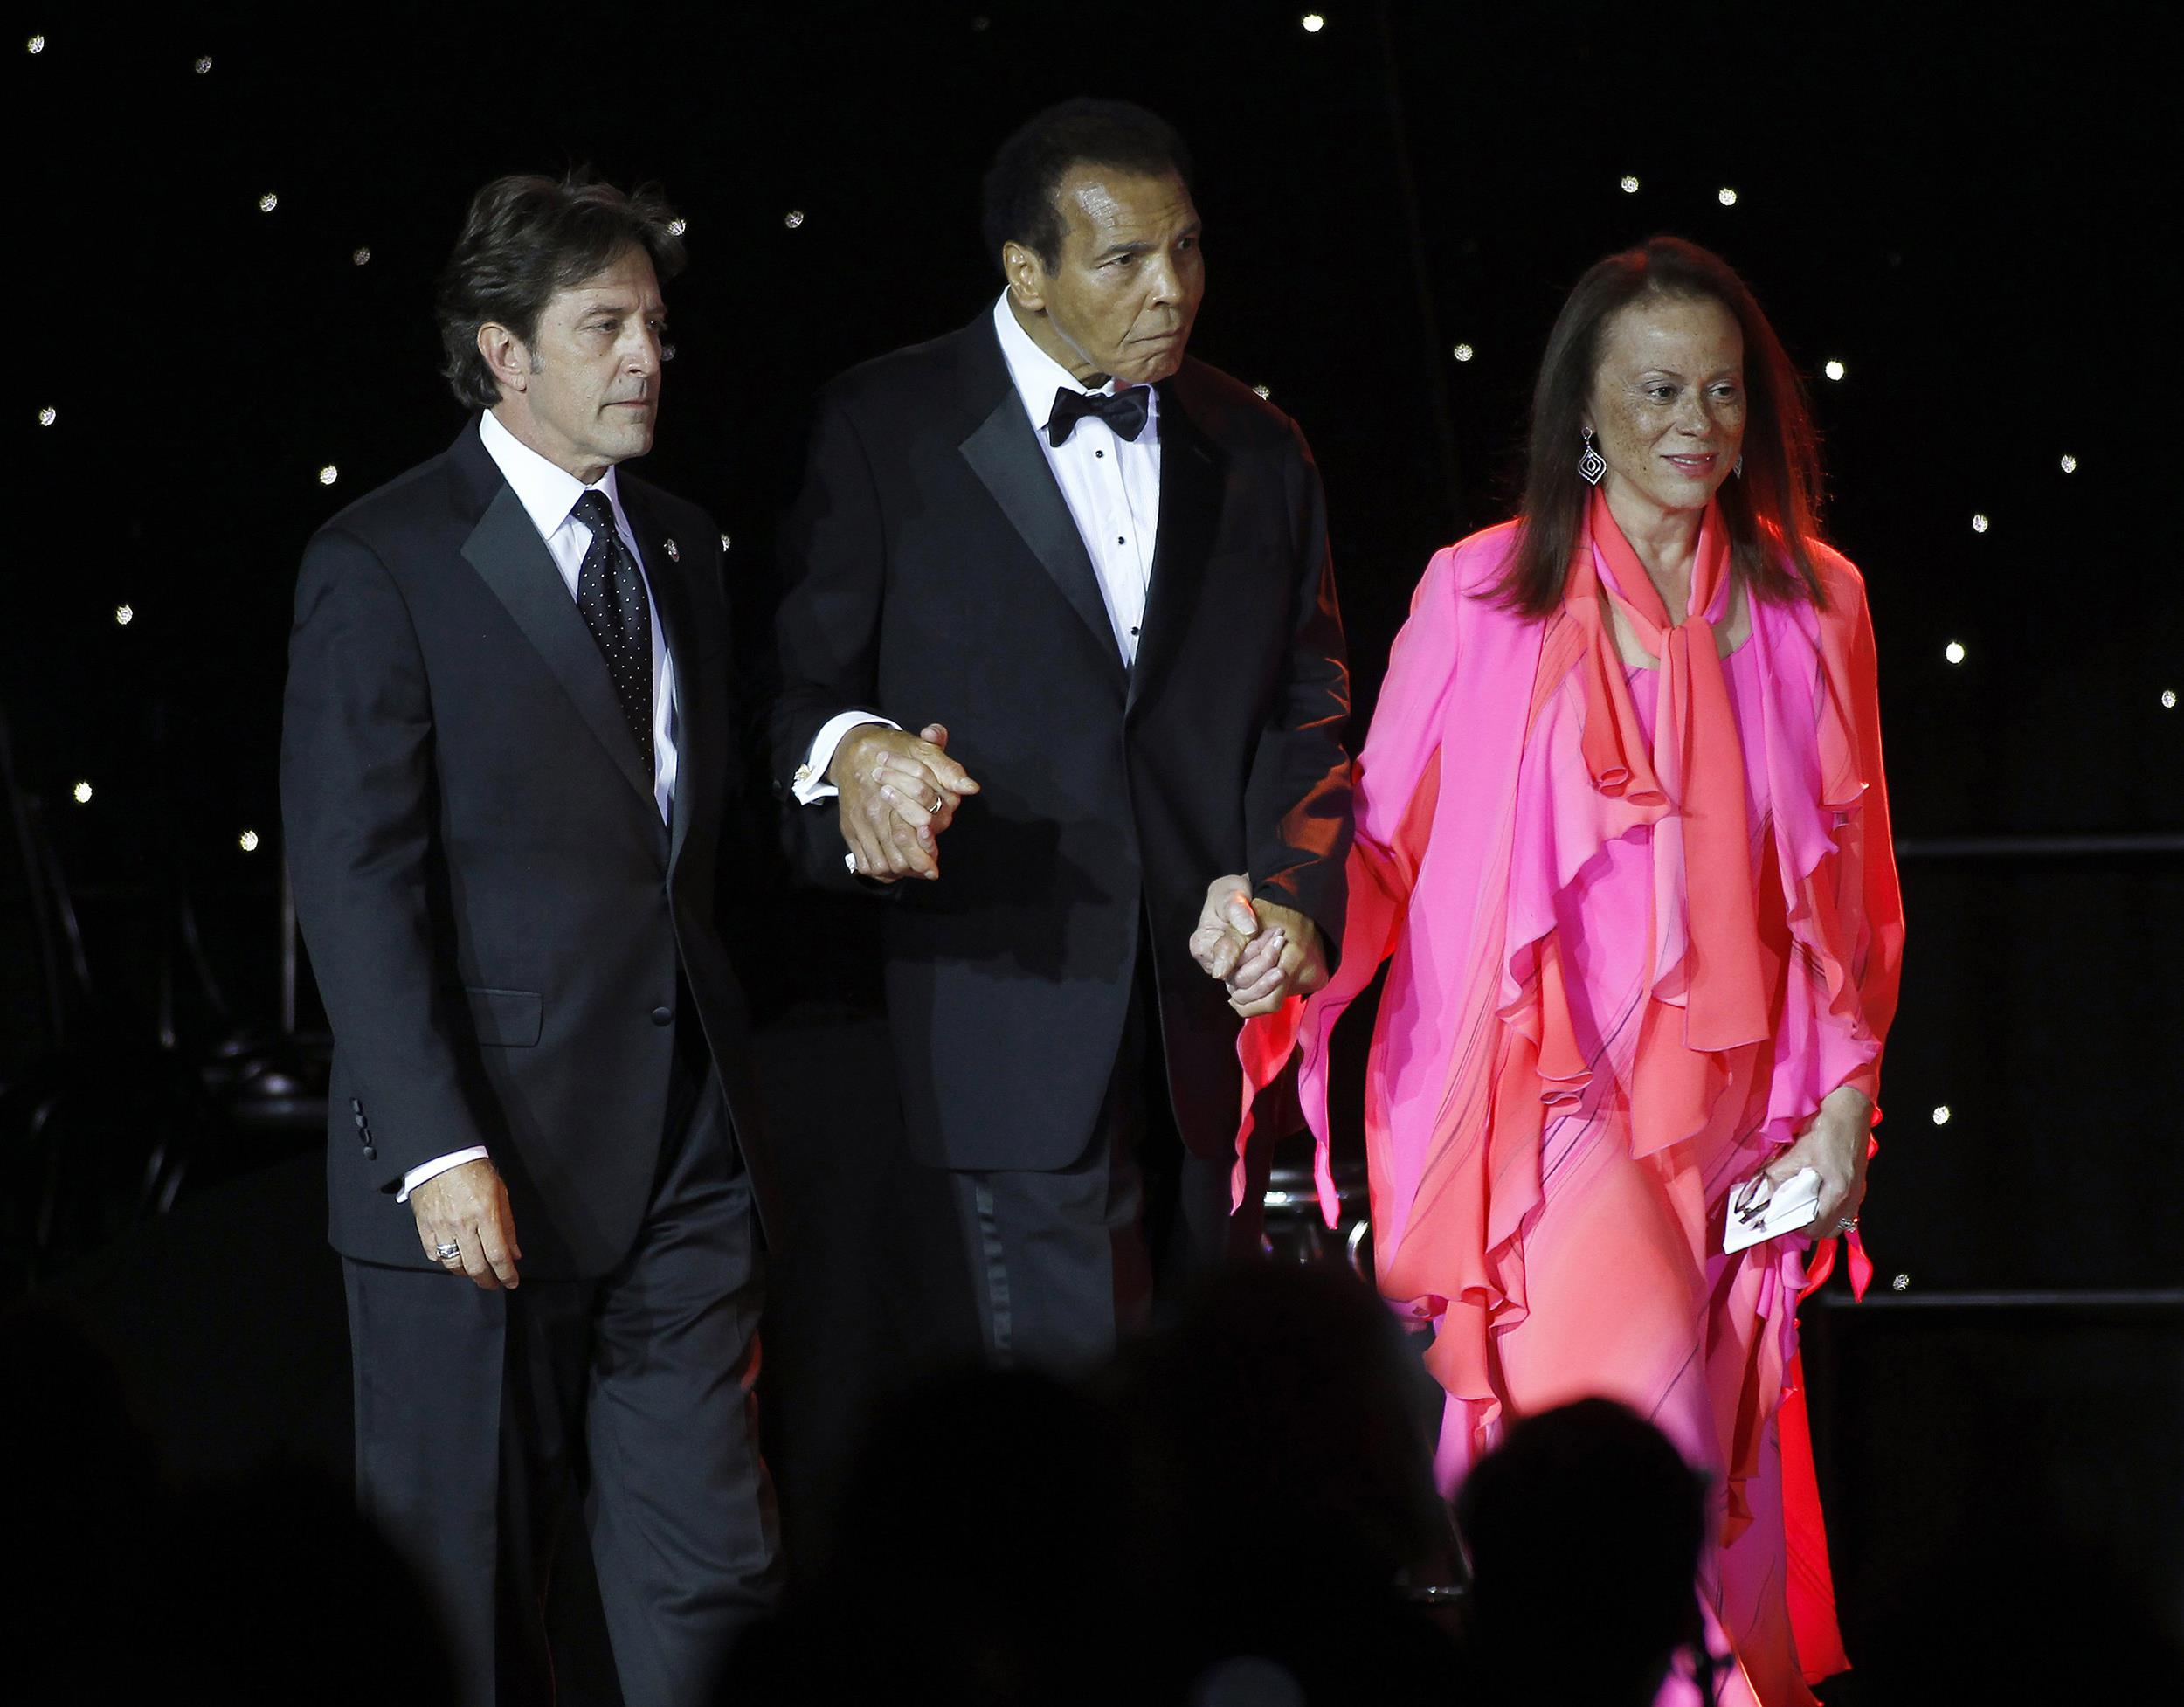 Image: Muhammed Ali is escorted on stage by his wife Lonnie Ali and a personal assistant during The Muhammad Ali Celebrity Fight Night Awards XIX in Phoenix